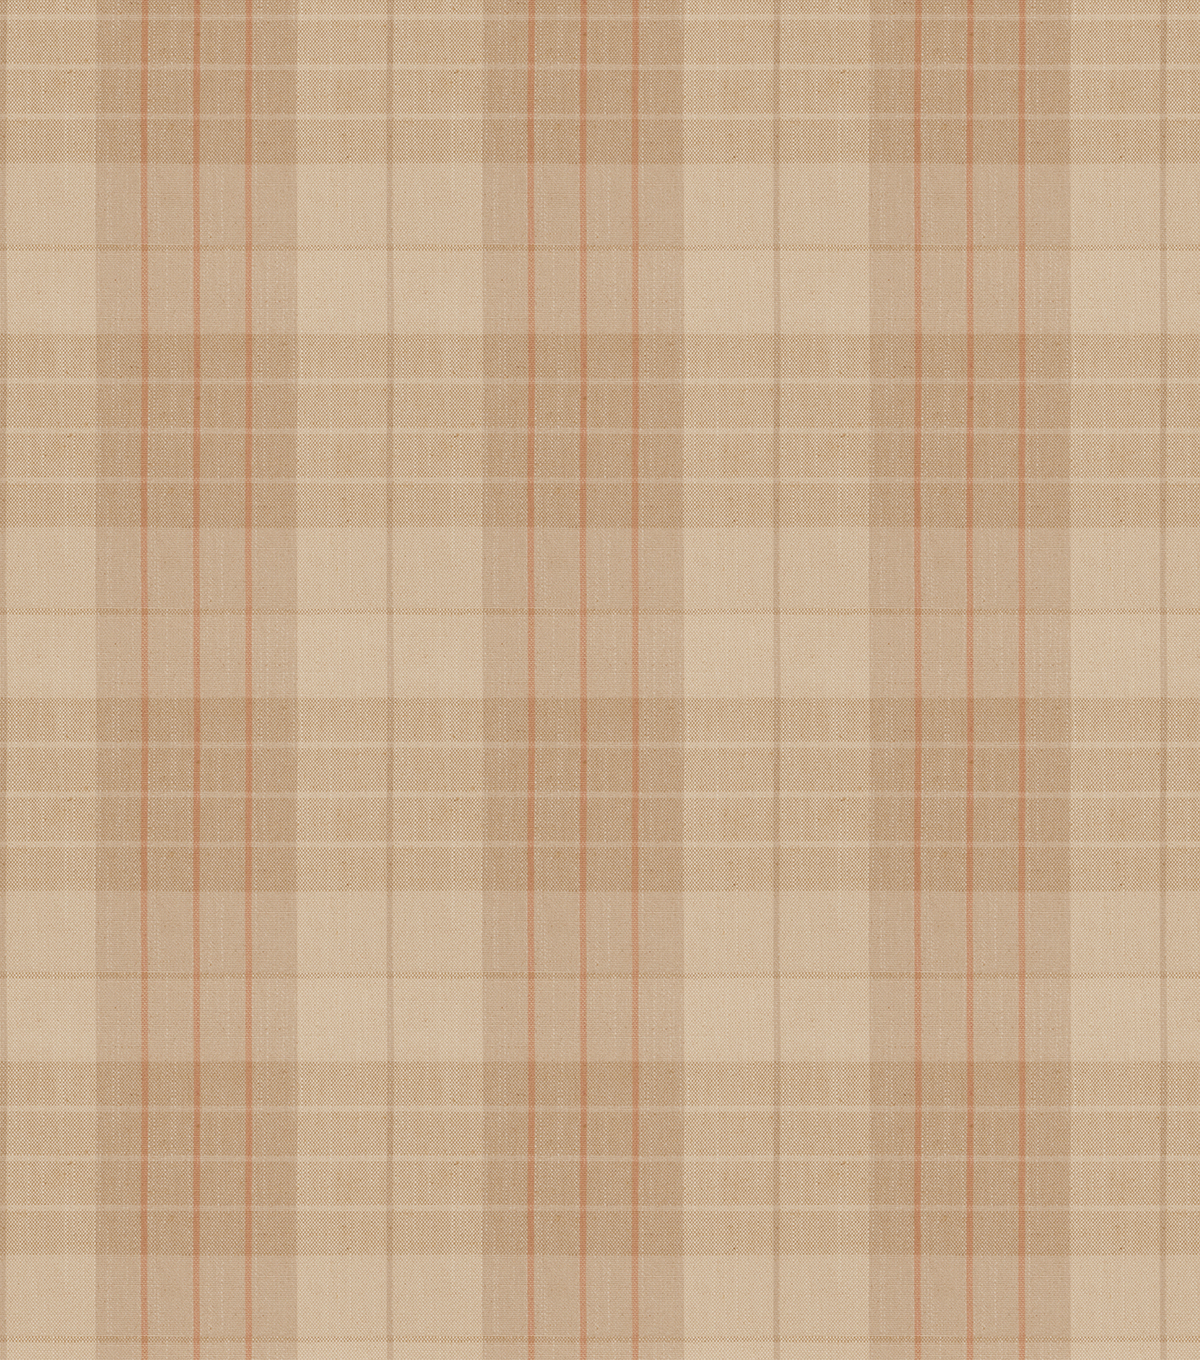 Eaton Square Multi-Purpose Decor Fabric 55\u0022-Lemay Rot Coral